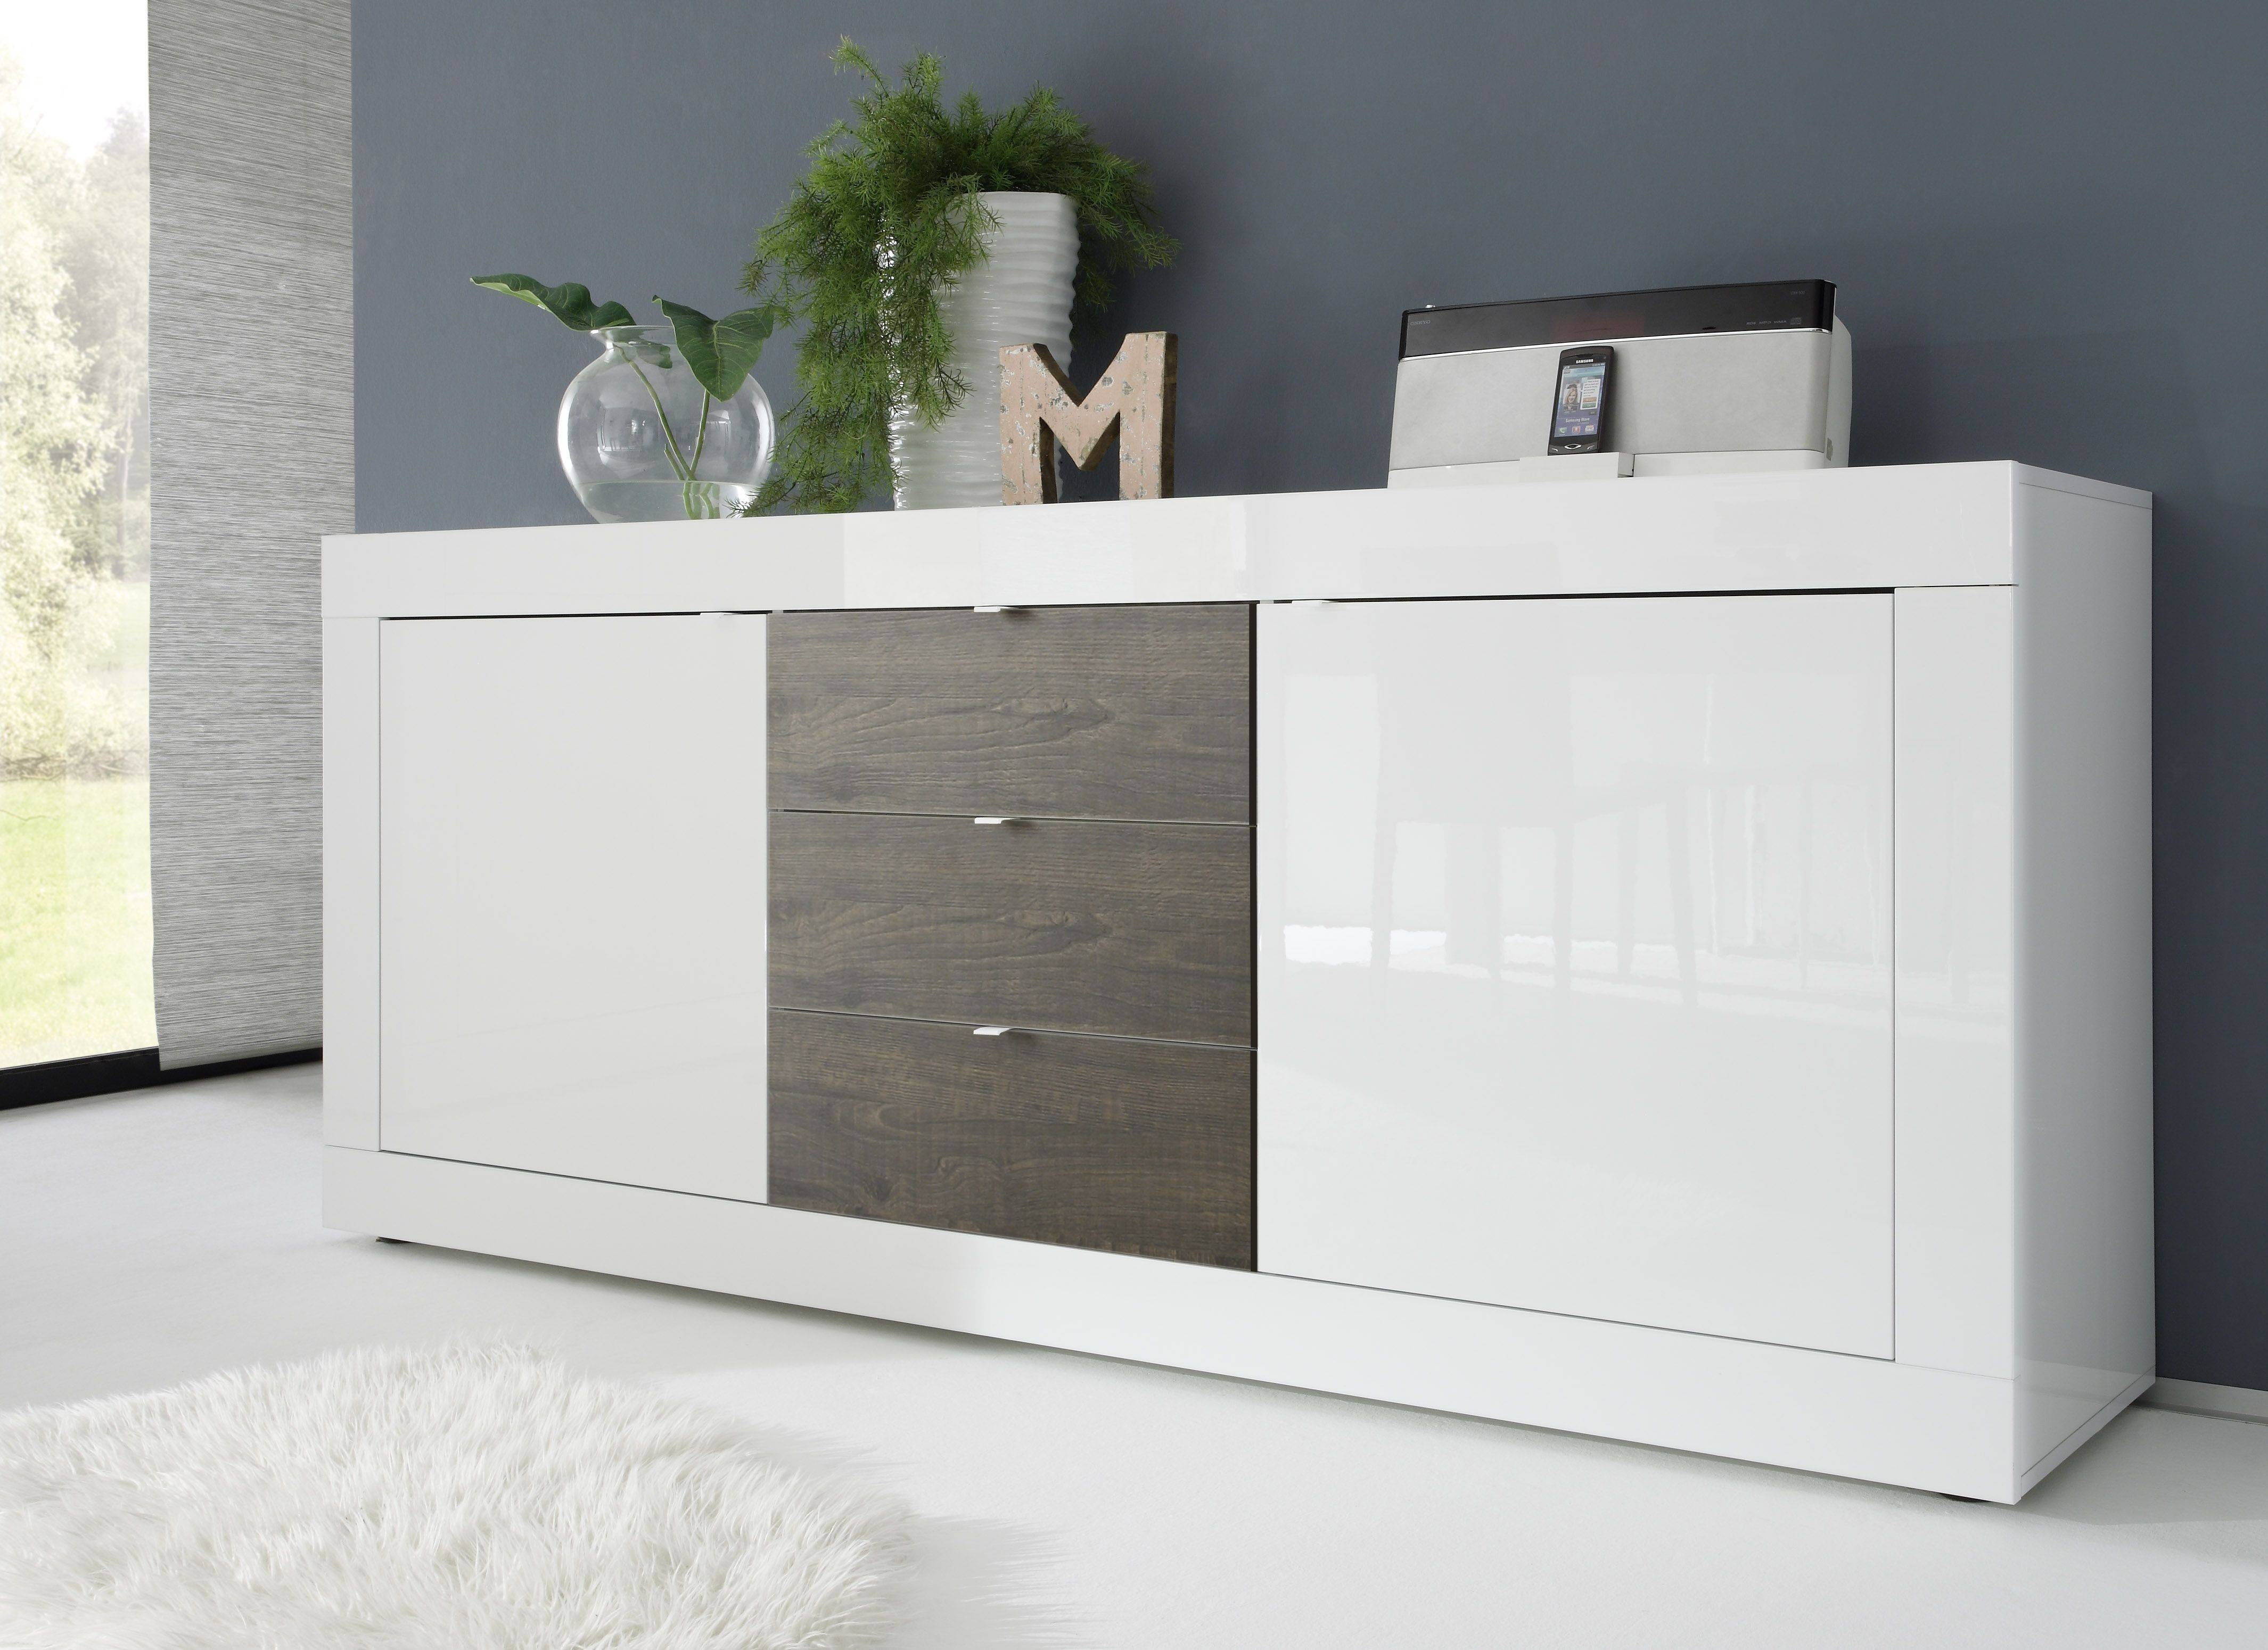 Dolcevita Ii White Gloss Sideboard – Sideboards – Sena Home Furniture Intended For Most Popular Gloss Sideboard Furniture (#6 of 15)